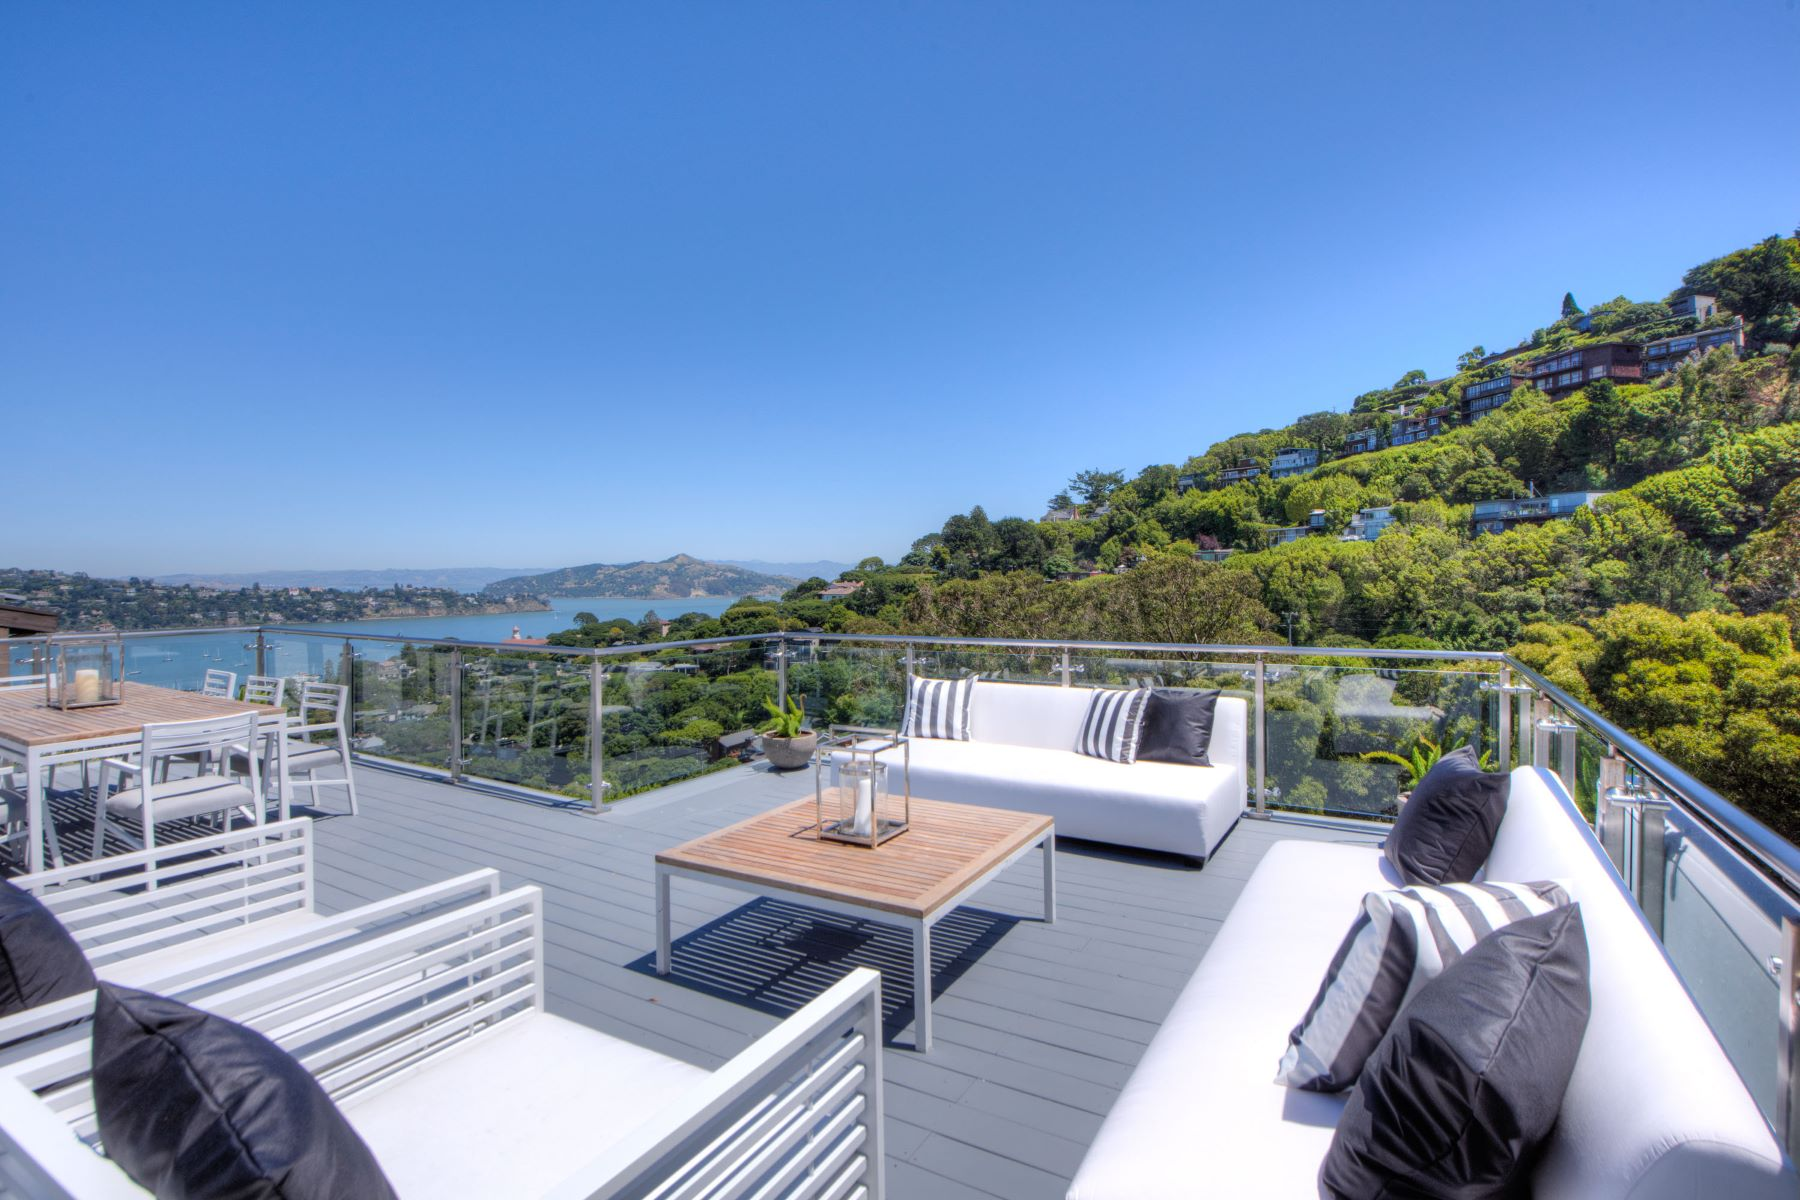 Single Family Home for Sale at Remodeled Contemporary with Bay Views and Detached Guest House 79 George Lane Sausalito, California 94965 United States